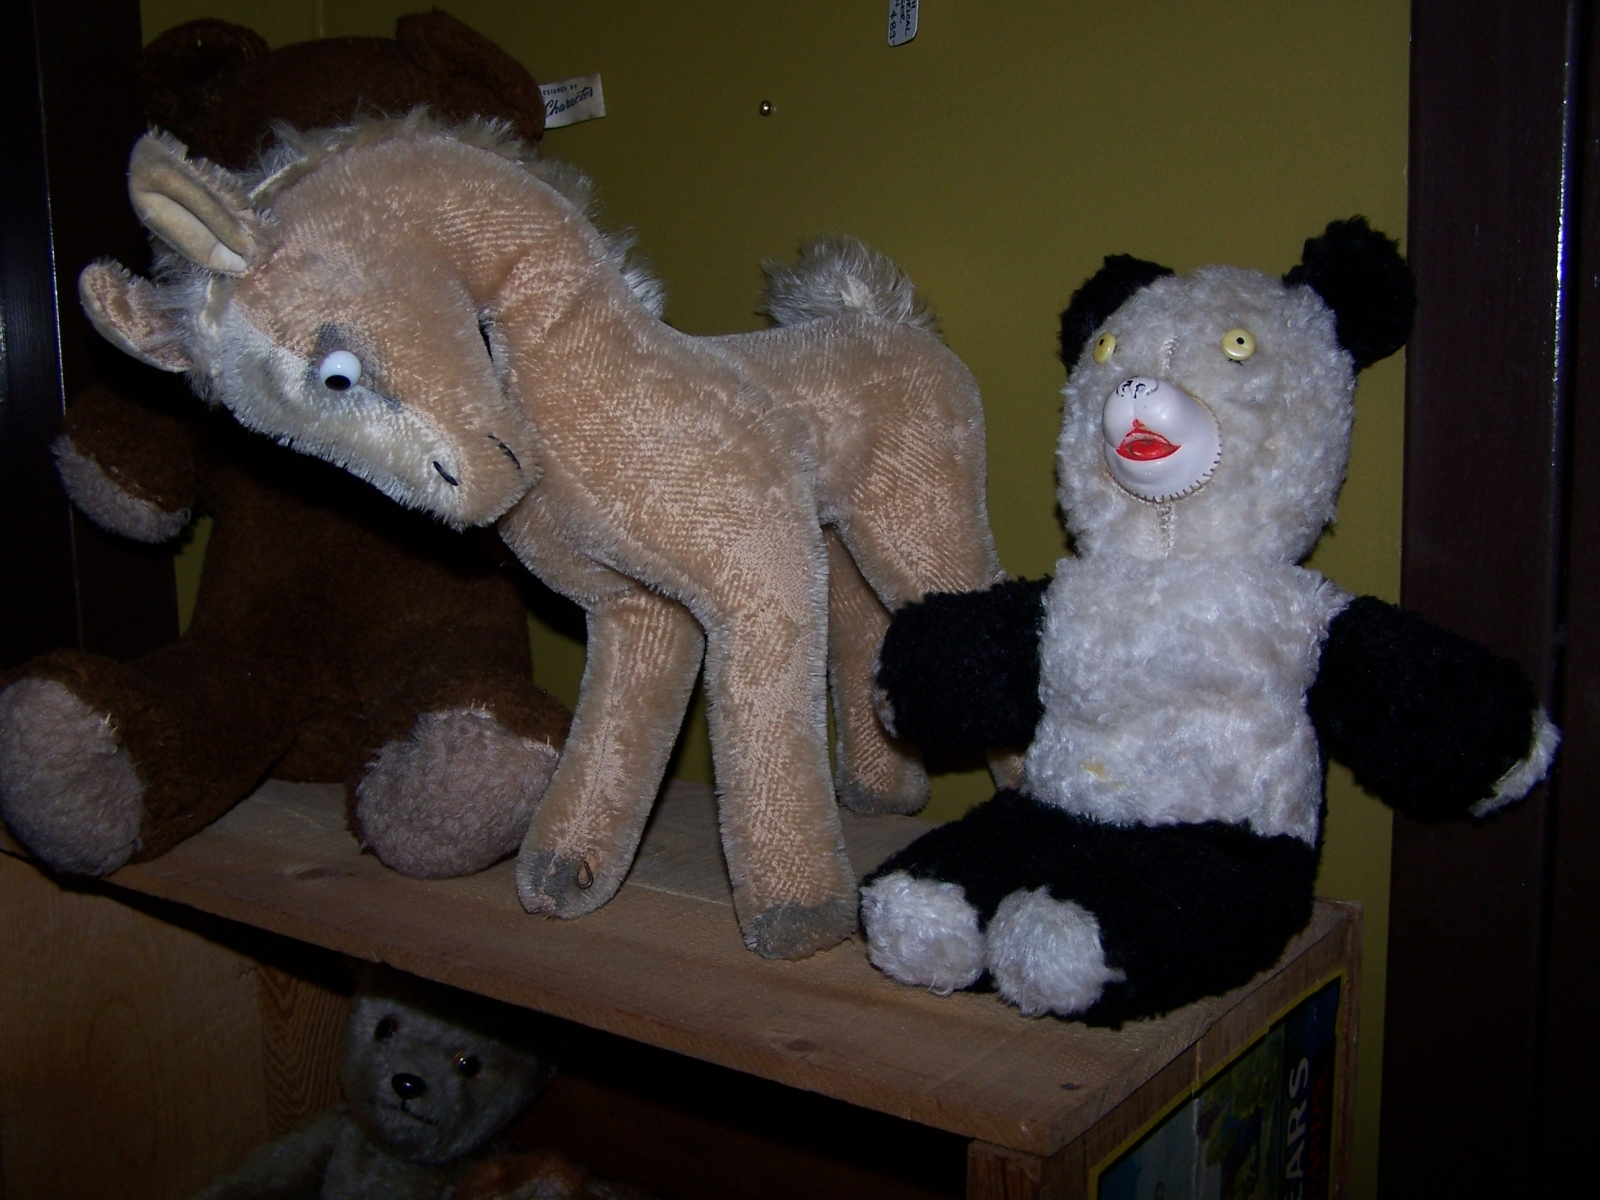 Antique stuffed horse and bear